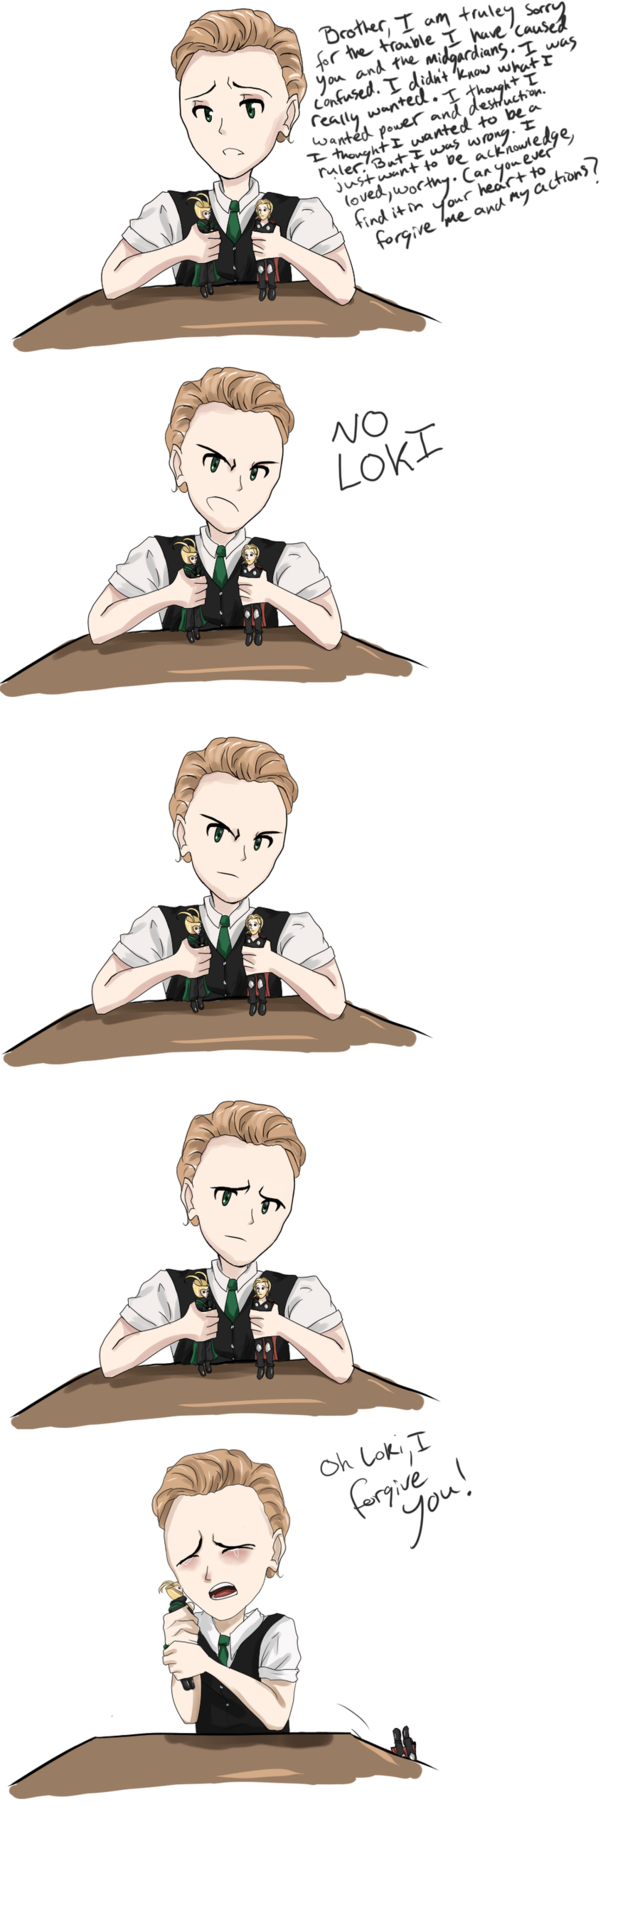 What Tom Hiddleston Does In His Spare Time by ~Sasako